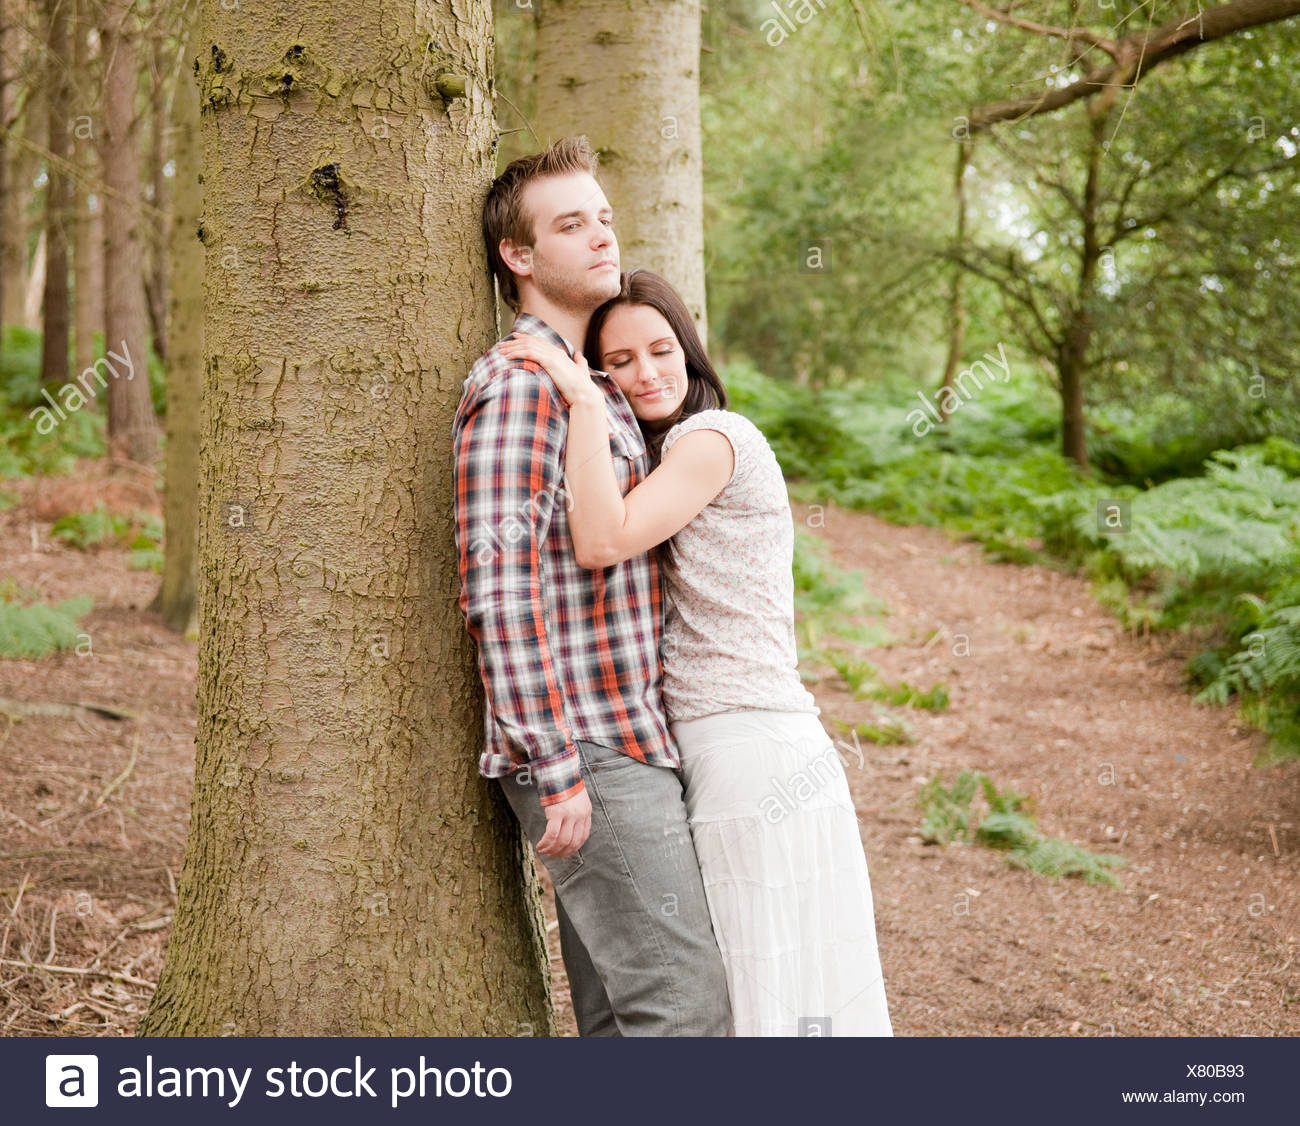 Portrait of young couple in forest Photo Stock